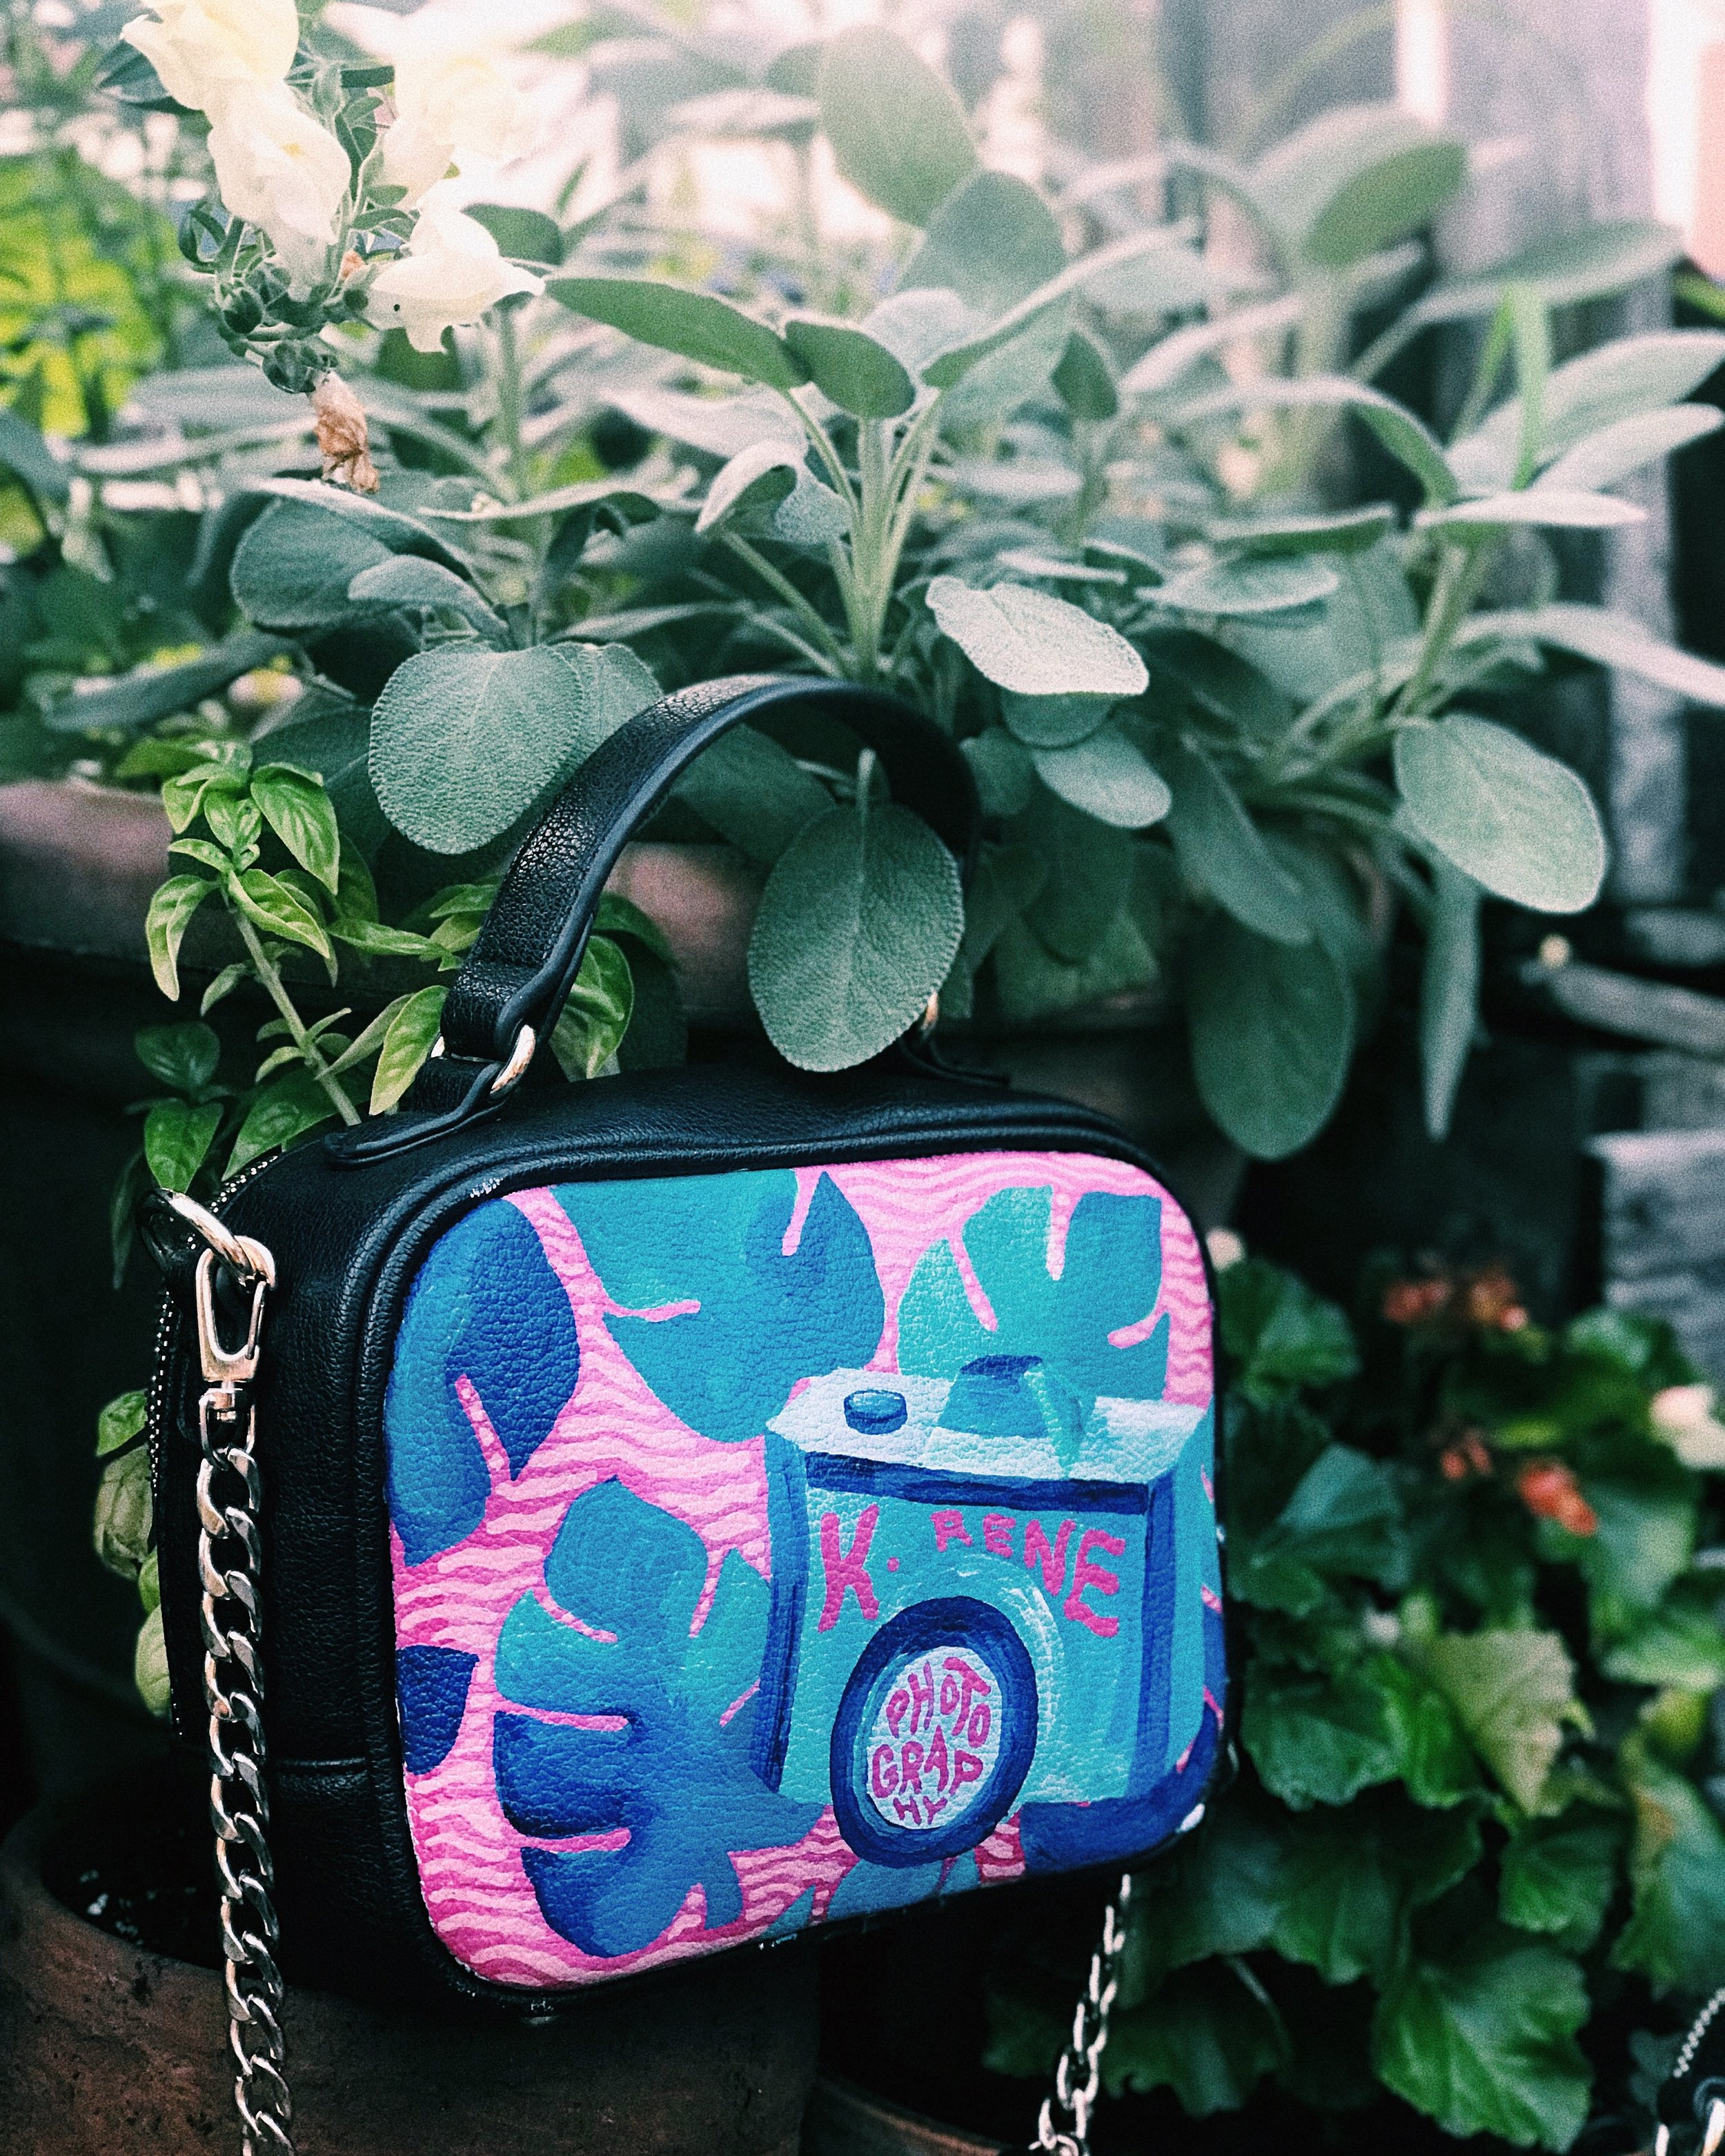 painted k. rene photo purse - 1/3 bags I customized for 3 babes KILLING their side hustle. Check out K. Rene's photo insta + website for the most breathtaking + FOMO inducing shots.